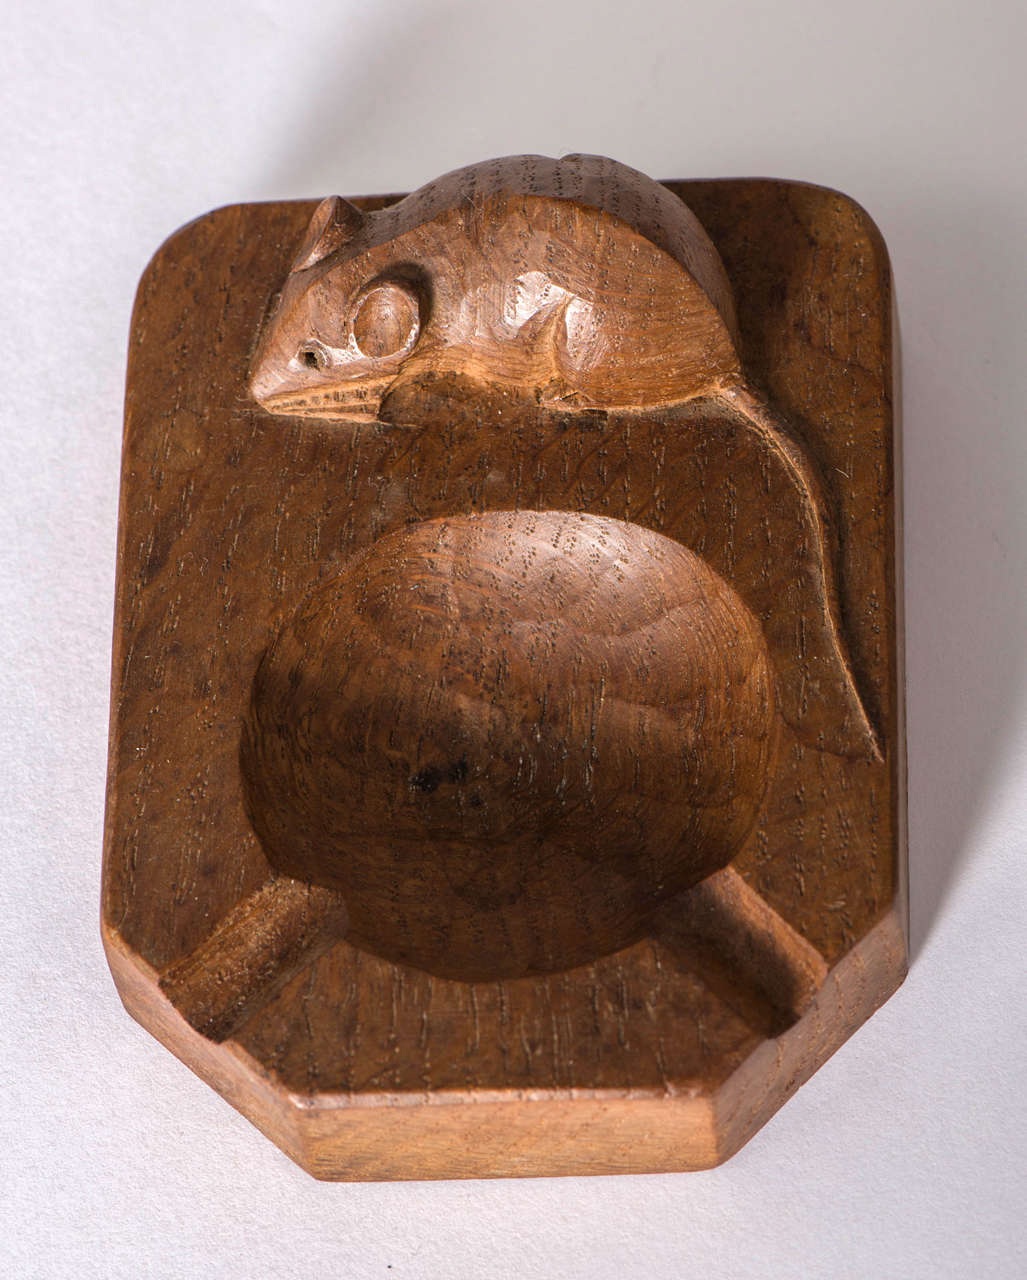 Robert quot mouseman thompson carved oak ashtray at stdibs